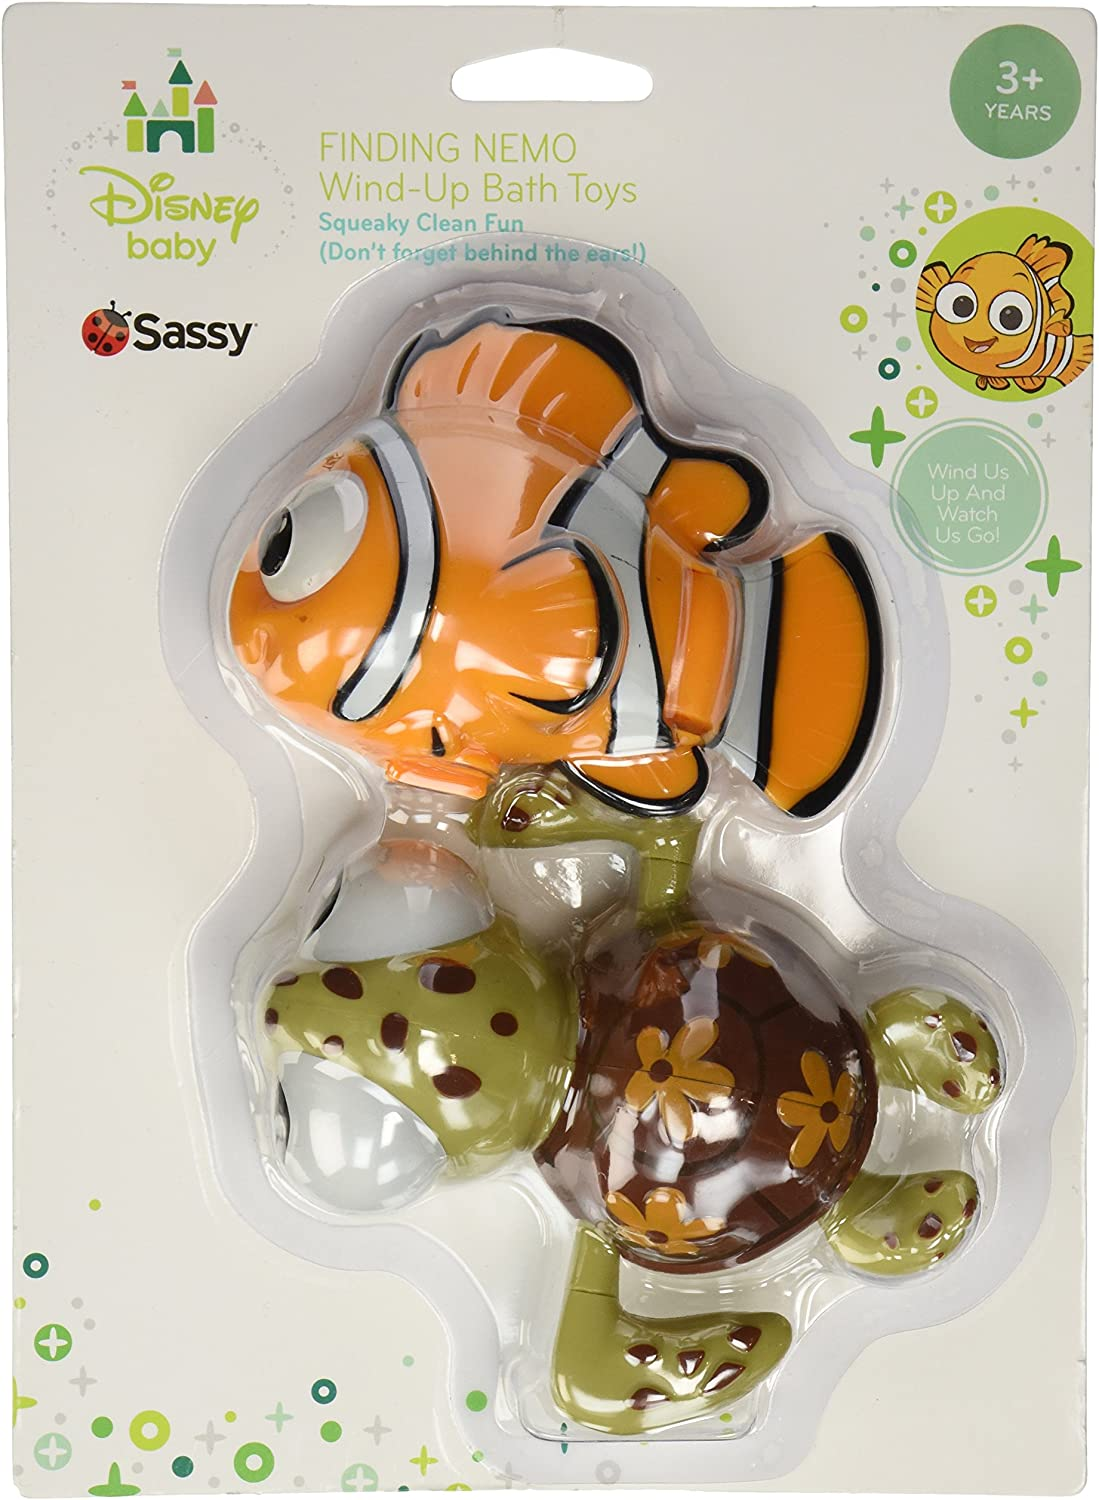 Sassy Disney Wind-Up Toy, Finding Nemo, 2 Count (Discontinued by Manufacturer) by Disney